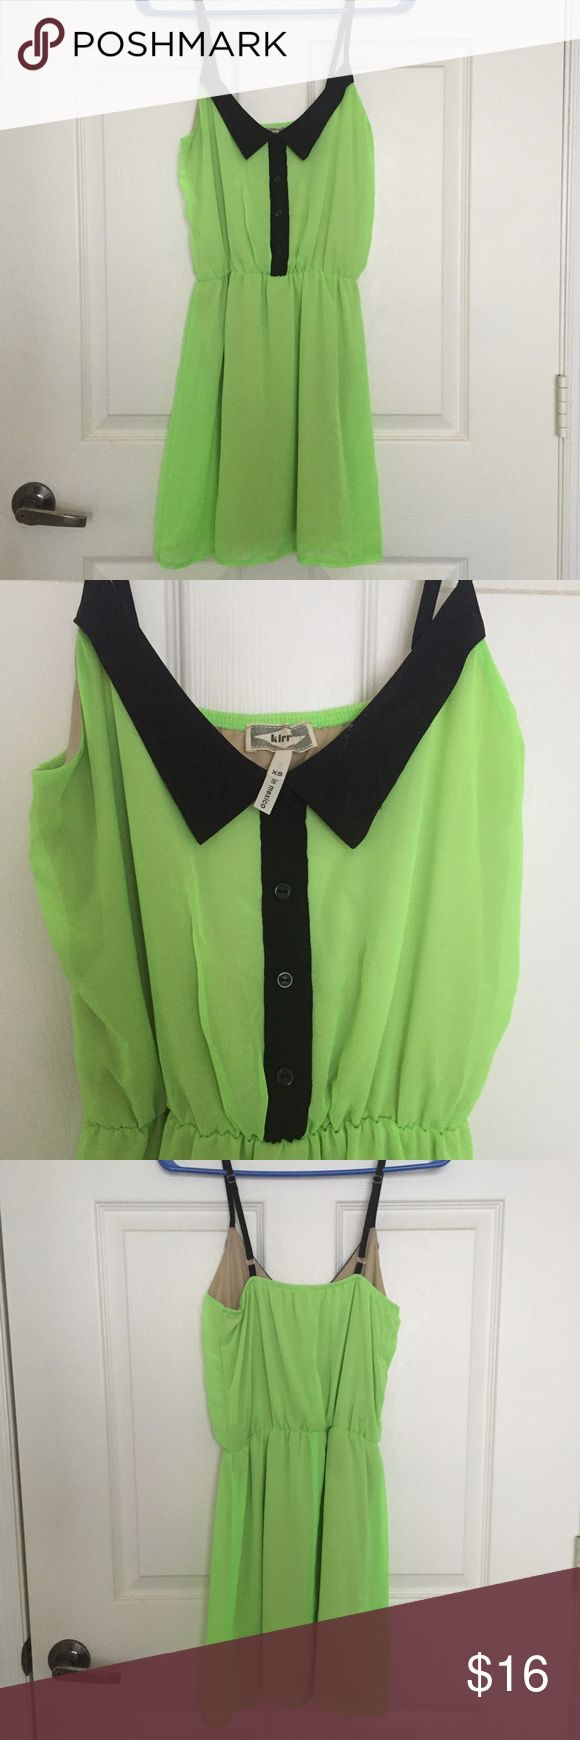 Kirra Neon green dress Cute, collared neon green dress • Has adjustable straps • Lined with a tan color so it's not see-through • XS • Great condition Kirra Dresses